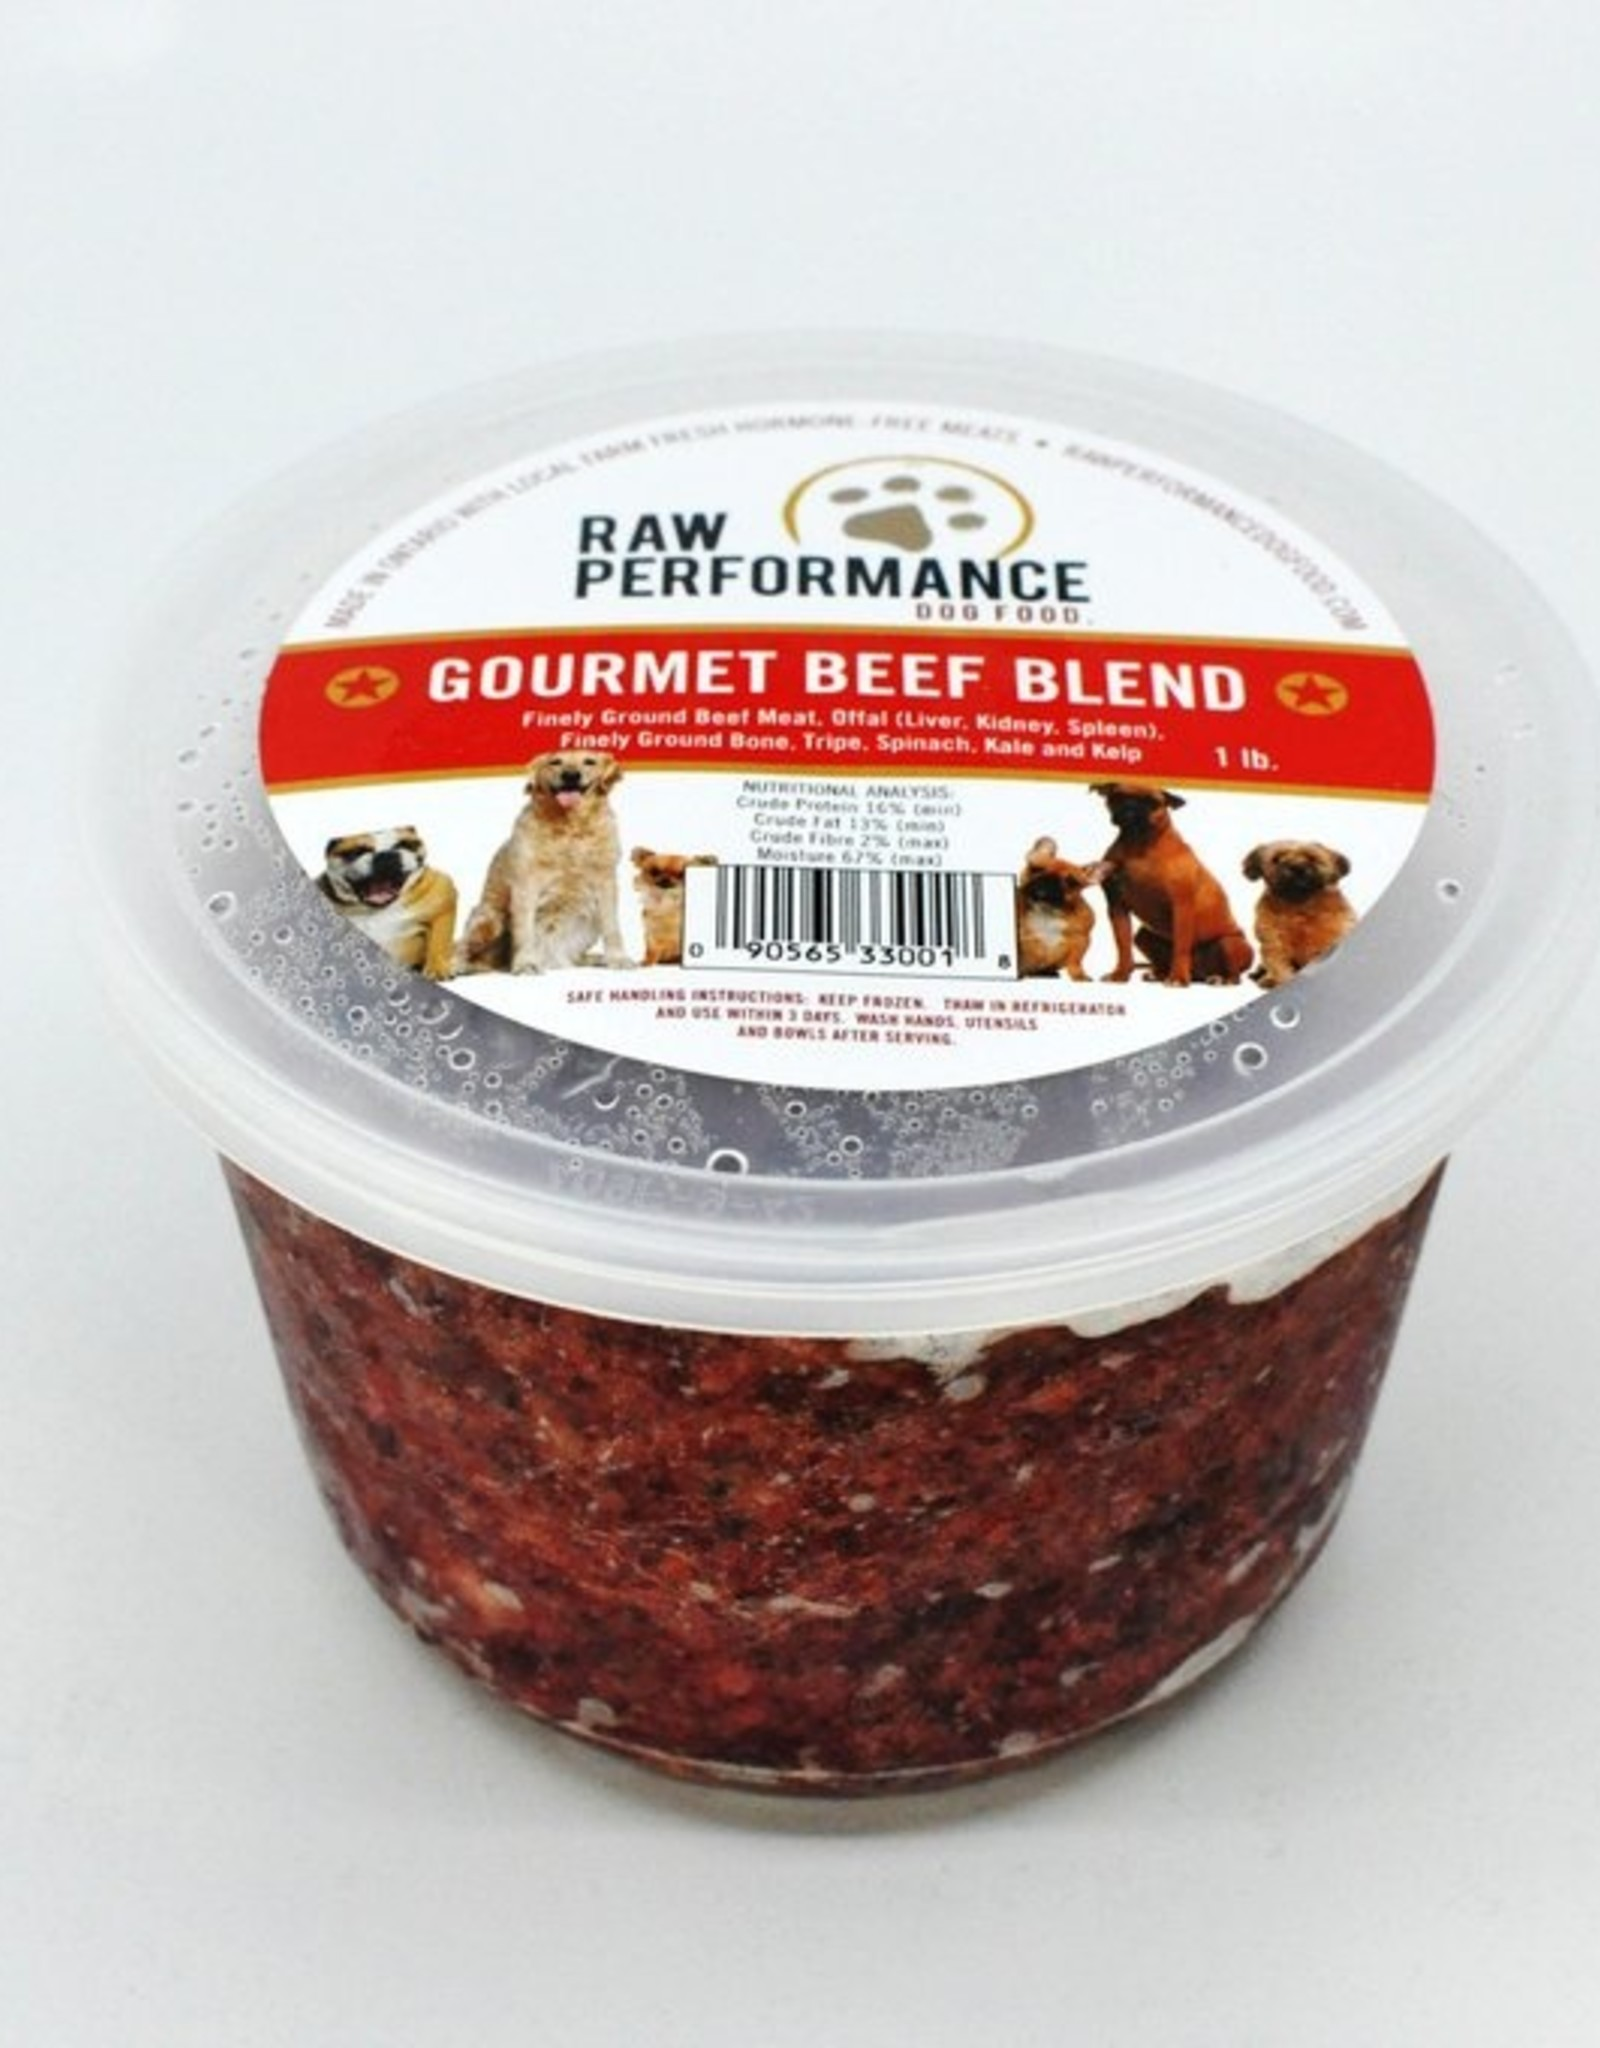 Raw Performance Raw Performance - Gourmet Beef Blend 1lb